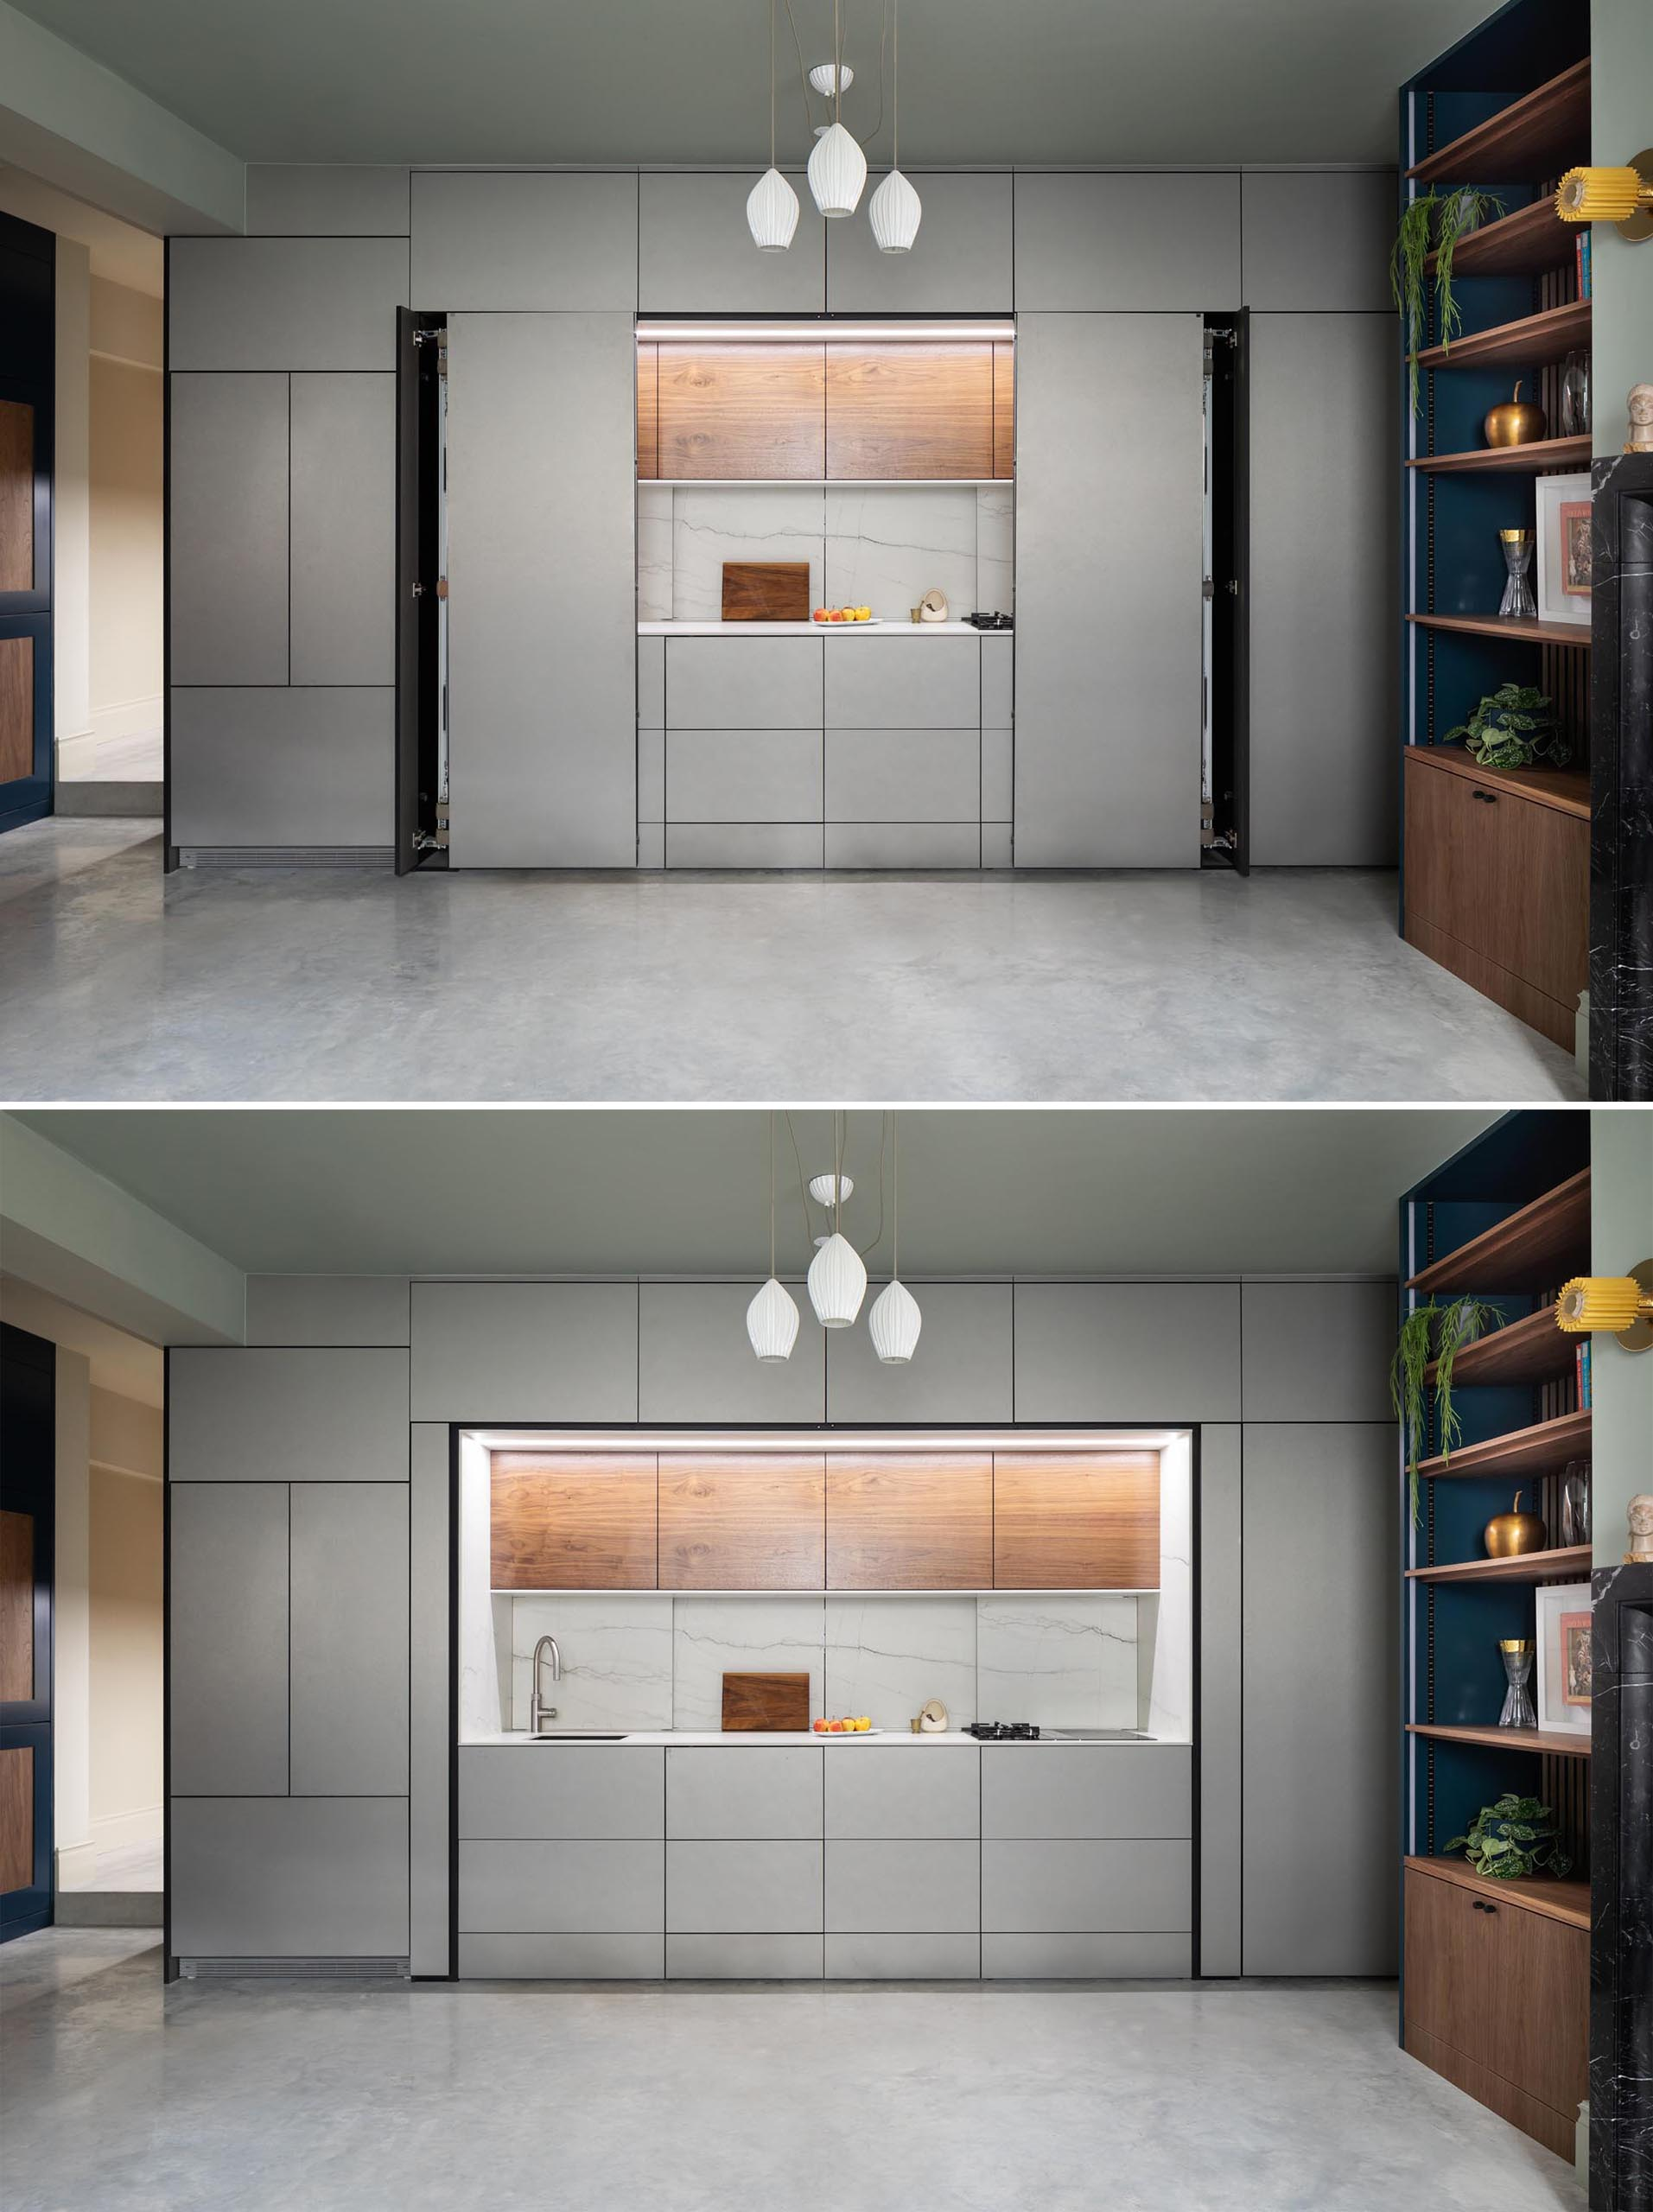 The folding doors of this modern kitchen can be completely hidden within the cabinetry.